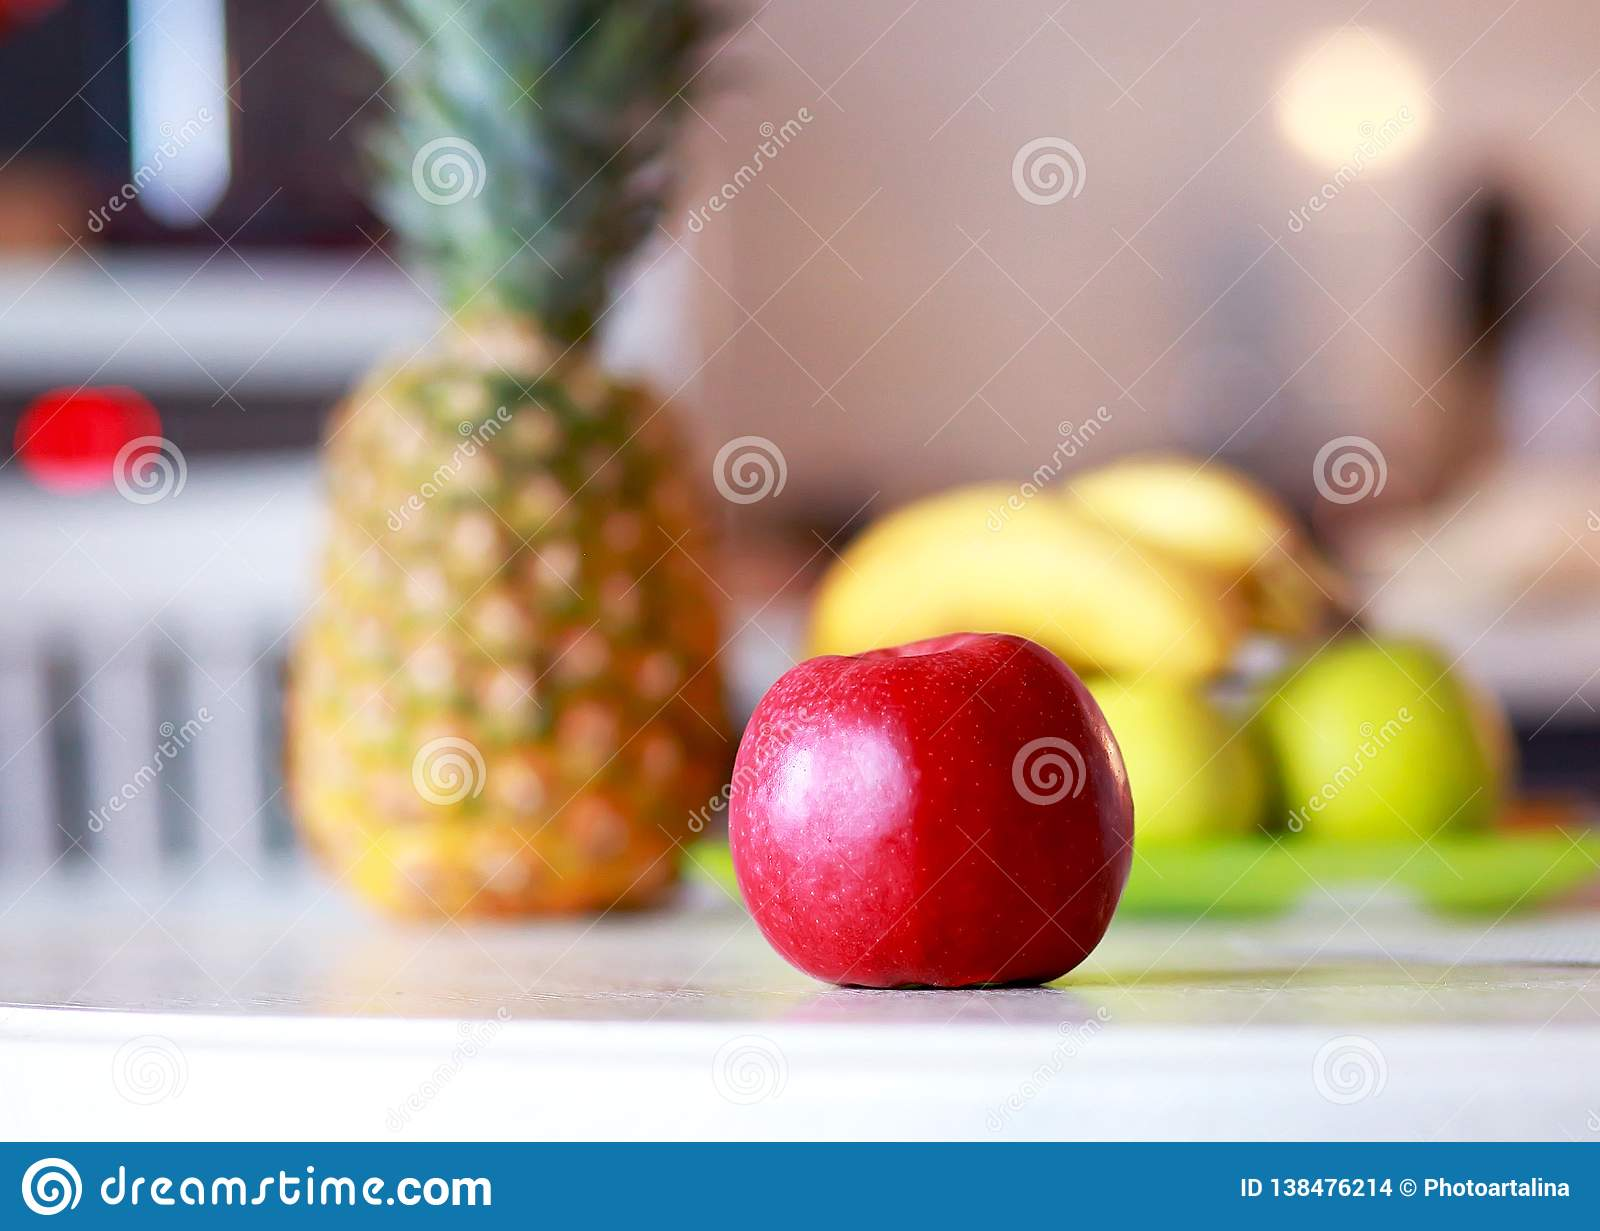 red apple and exotic fruits are on the table